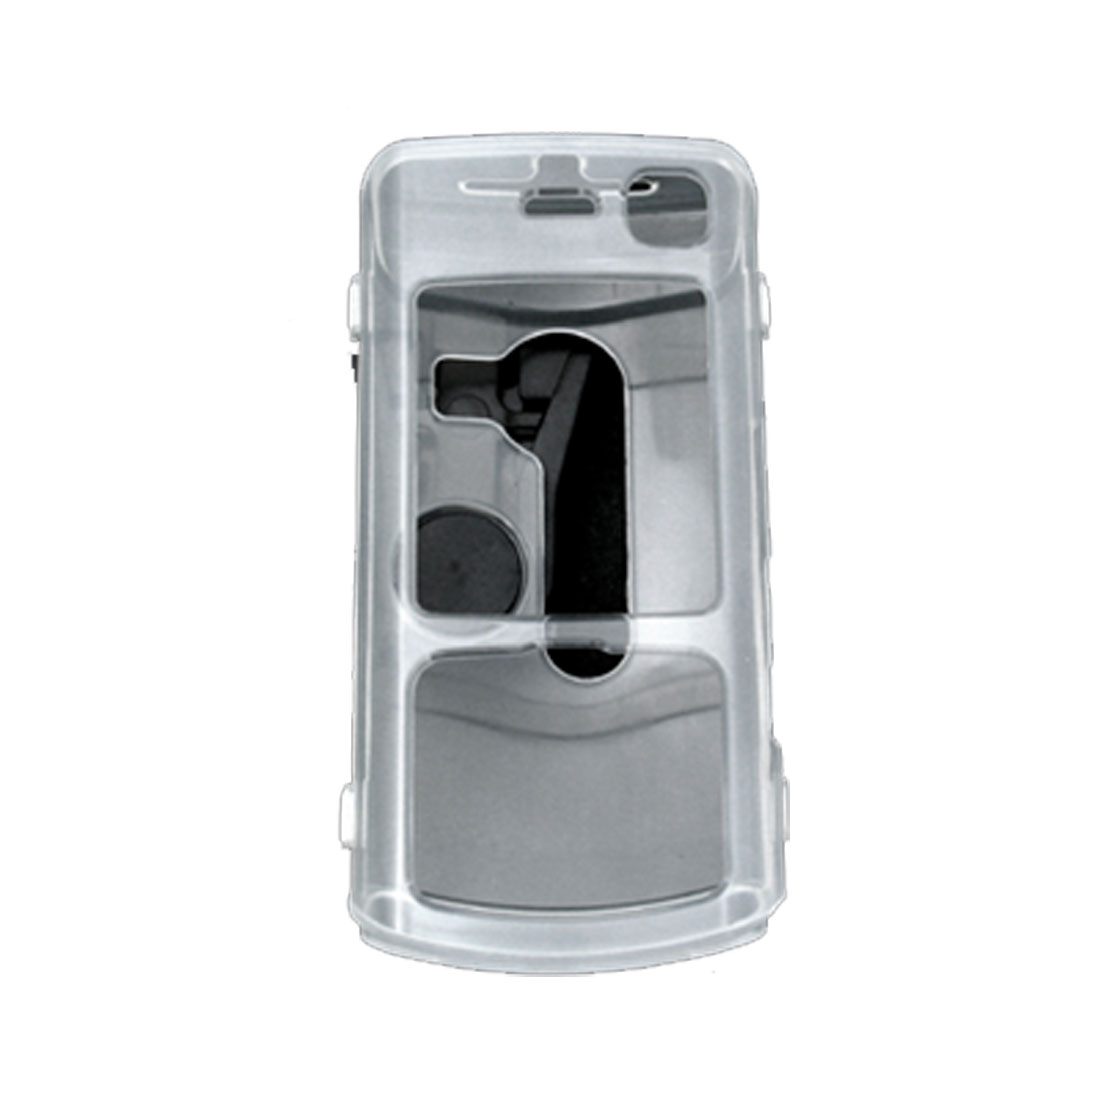 Crystal Cover Case w. Belt Clip for Nokia N70 - Clear